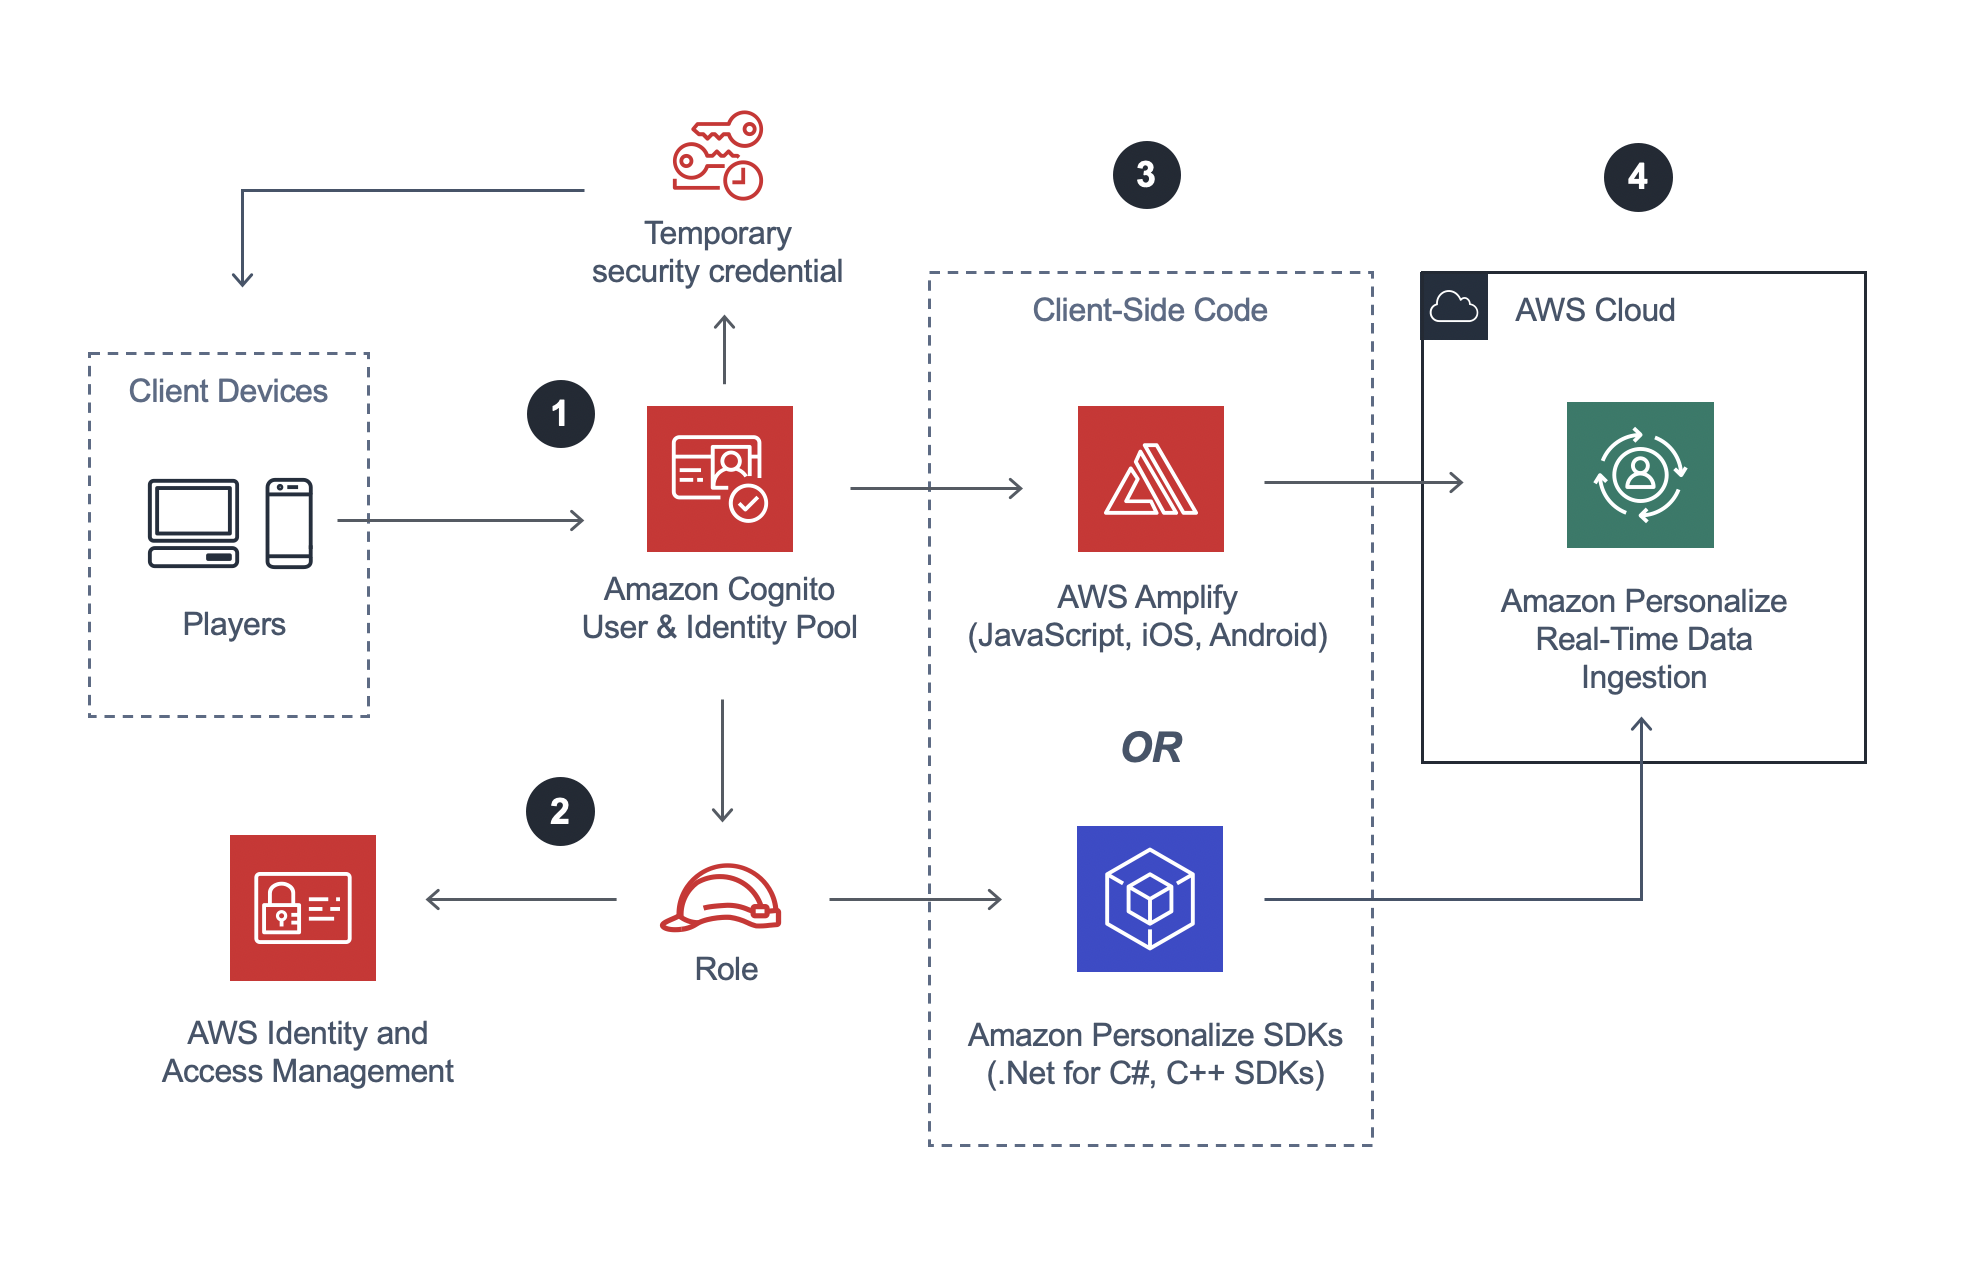 Architecture for client-side integration with Amazon Personalize.